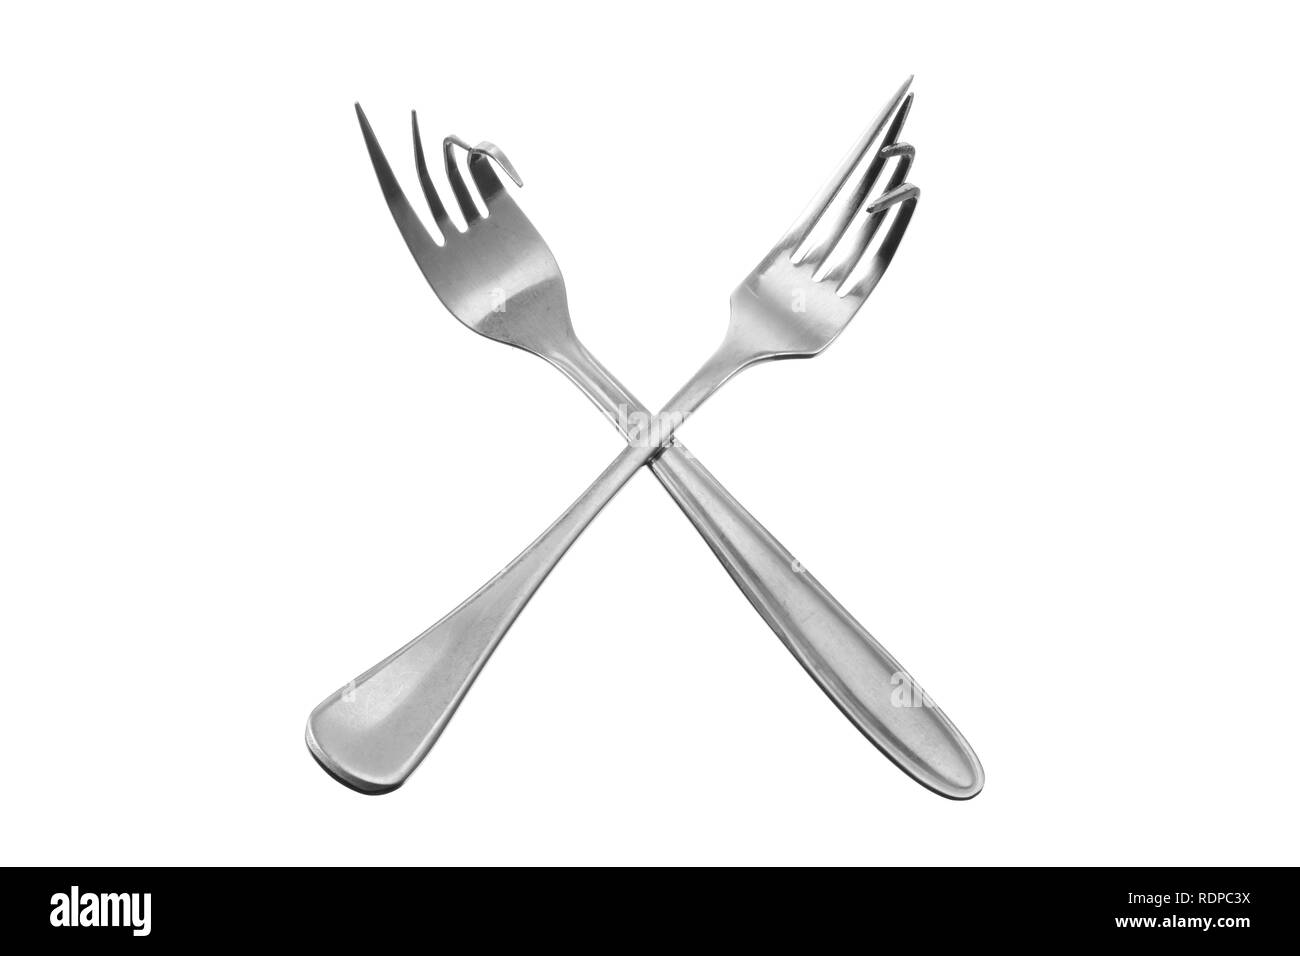 Bent Forks on White Background - Stock Image